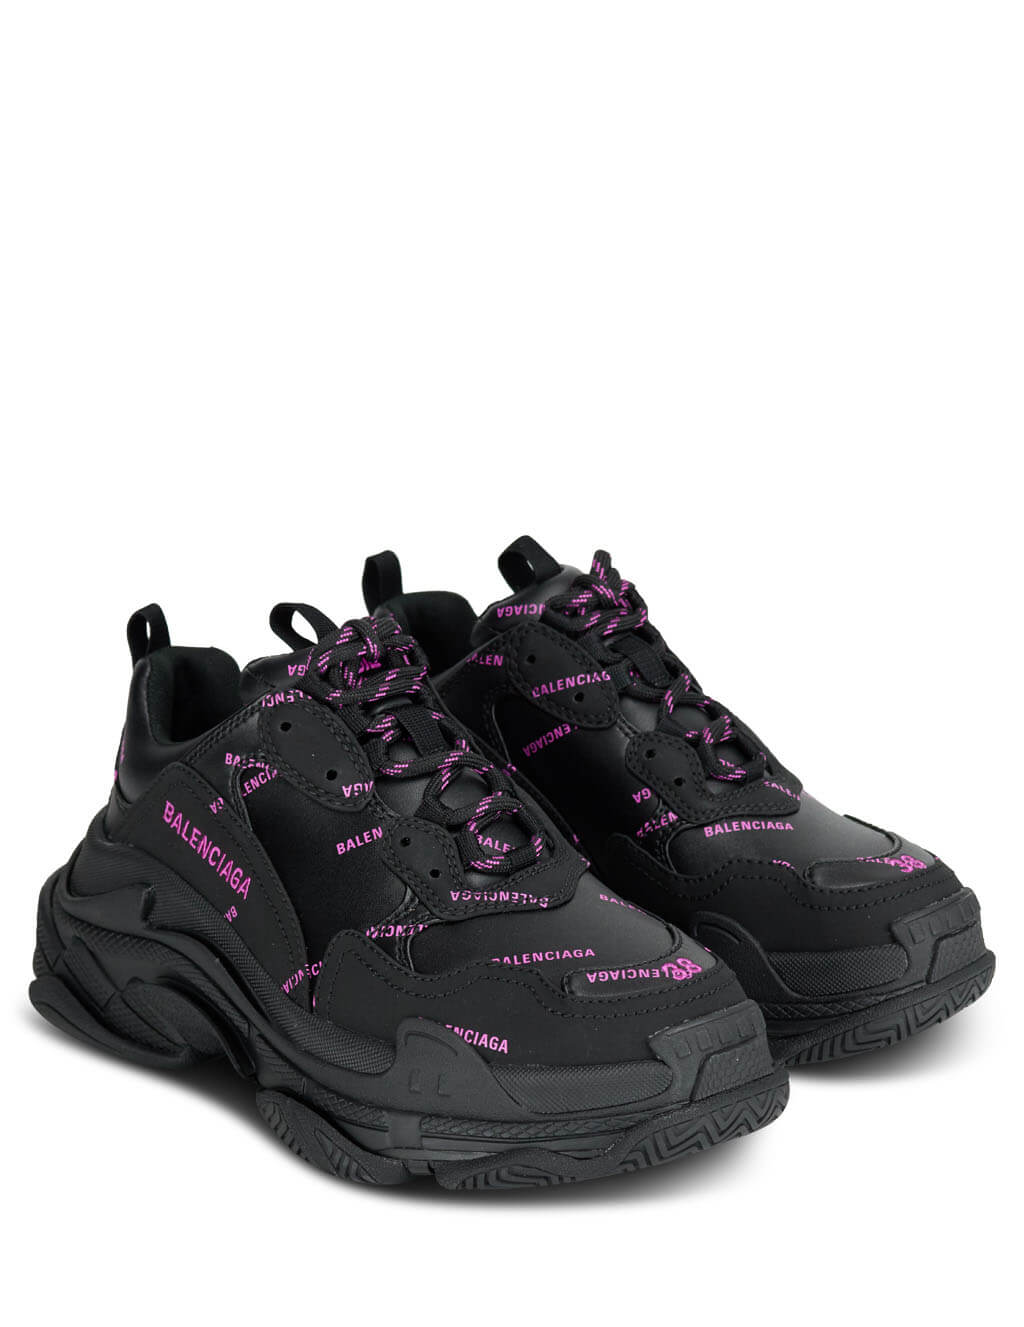 Balenciaga Women's Giulio Fashion Black/Pink Triple S Sneakers 524039W2FA11050